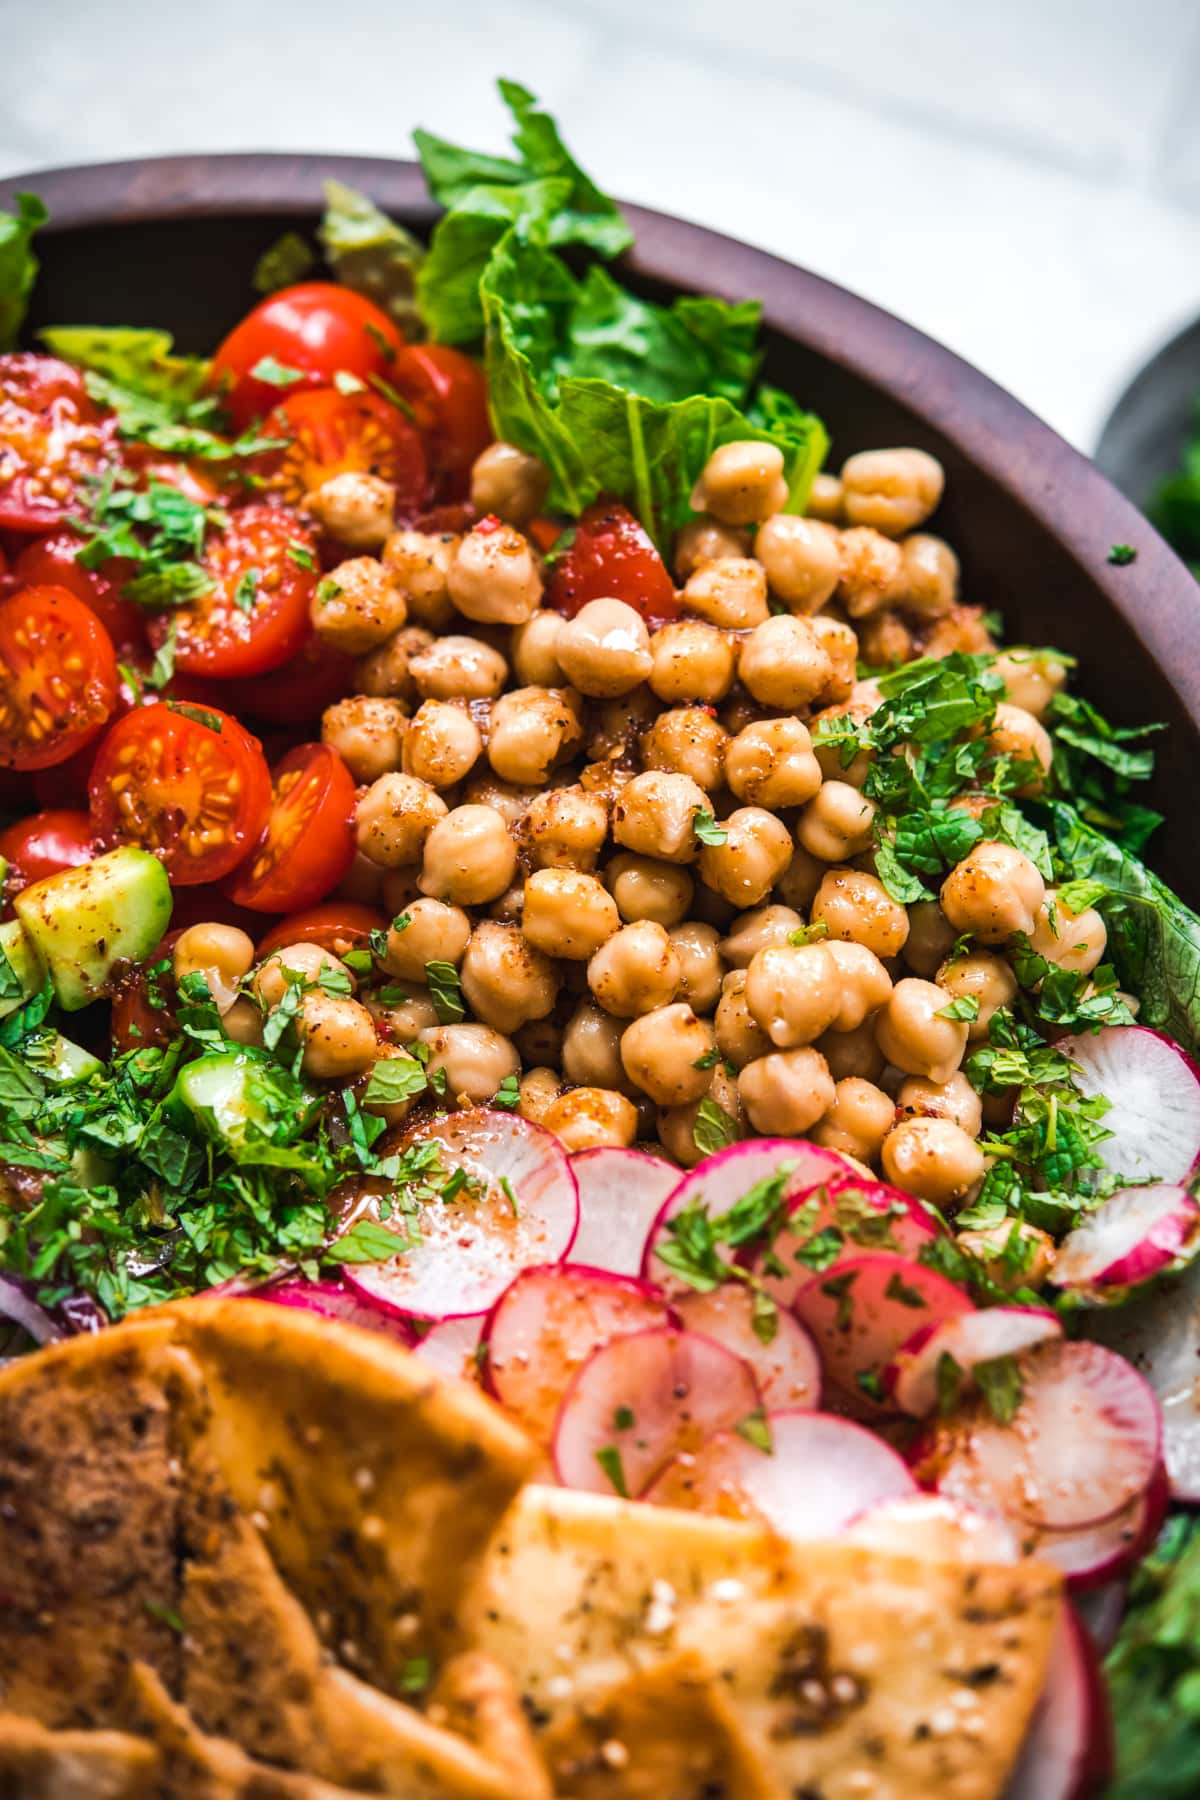 close up view of chickpeas in sumac dressing on fattoush salad.